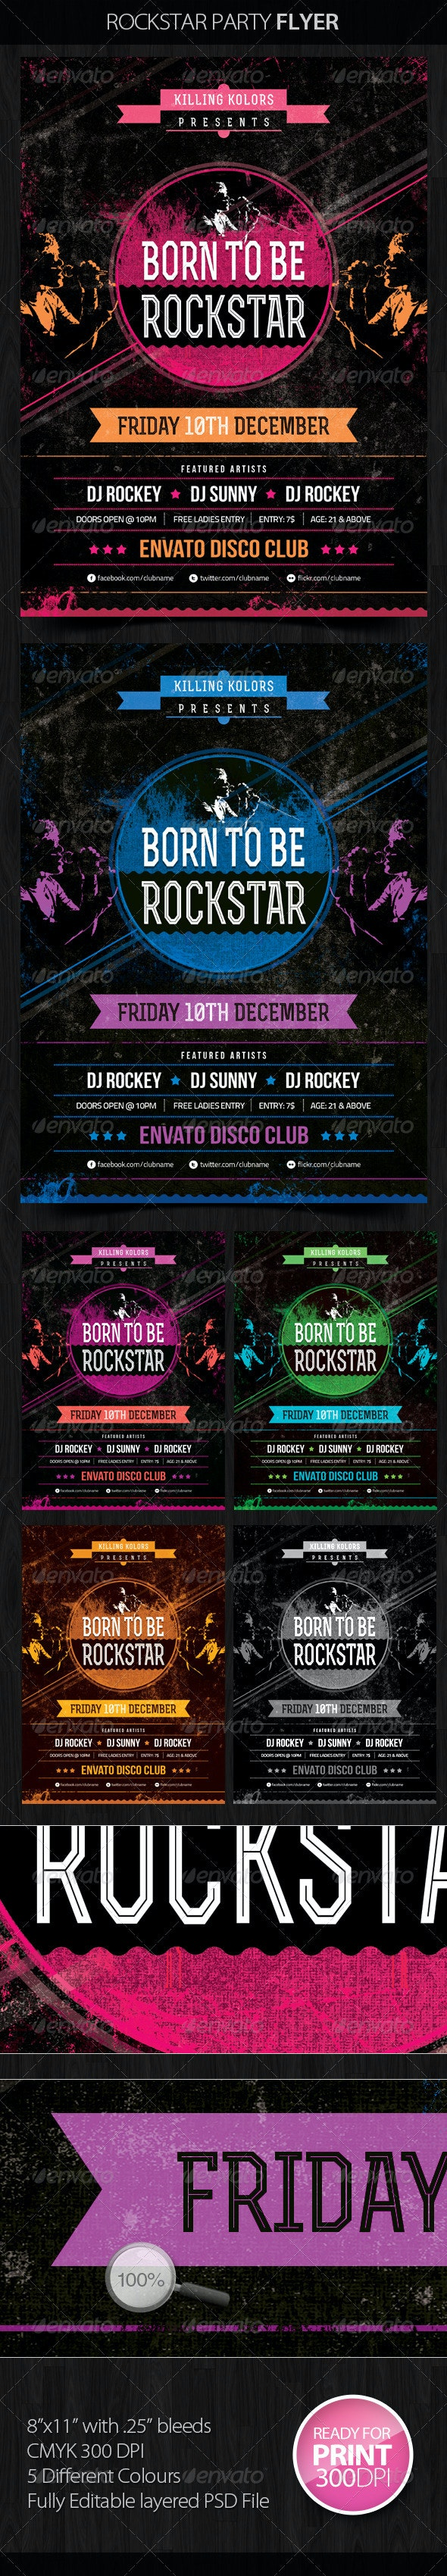 Rockstar Retro Party Flyer - Clubs & Parties Events